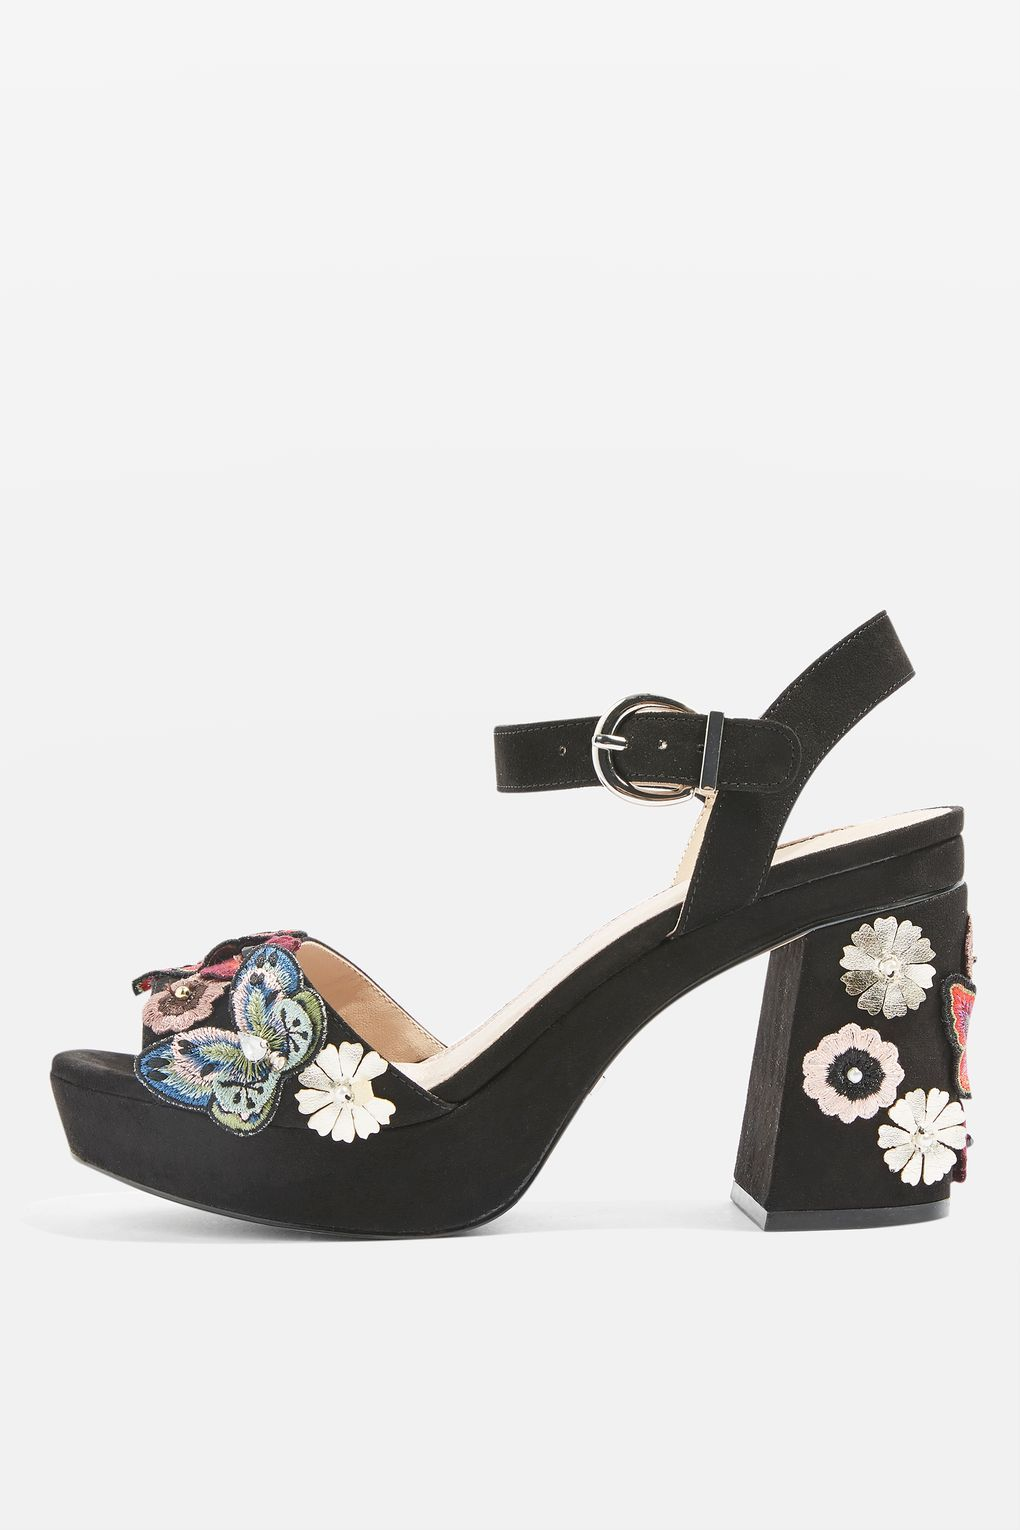 55676ca18331 Add height and character to your outfit with these embellished platform  sandals. Featuring a tall block heel and adjustable ankle strap